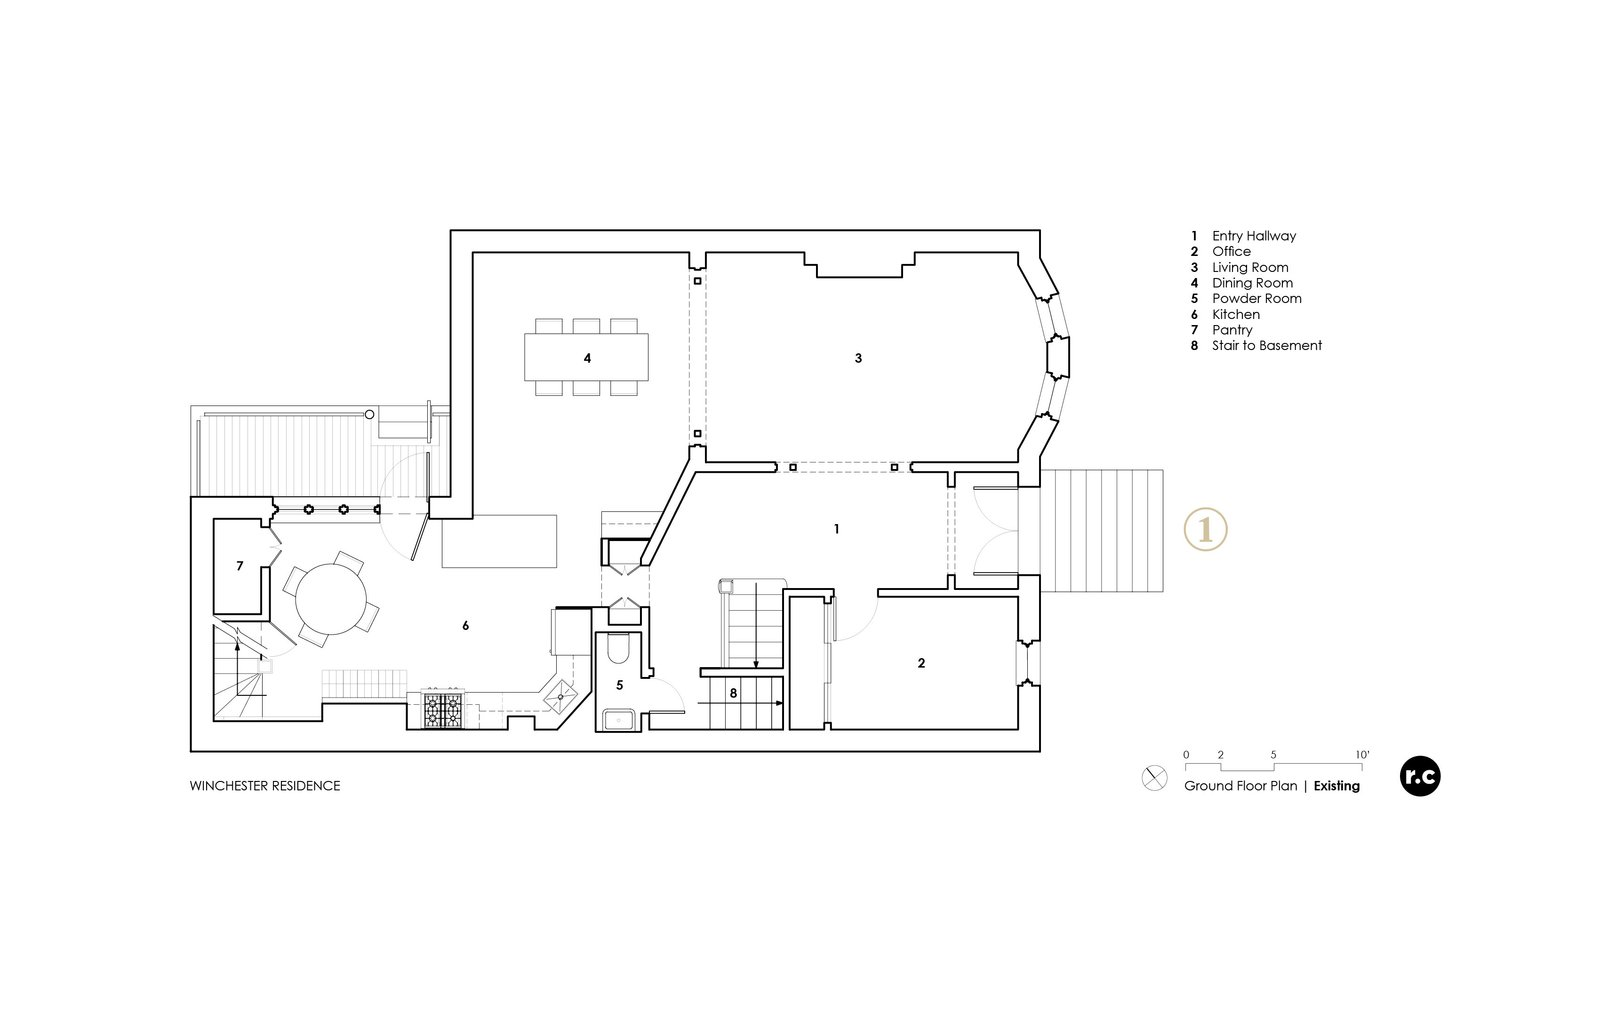 Plan - Before renovations  Winchester Residence by RobitailleCurtis